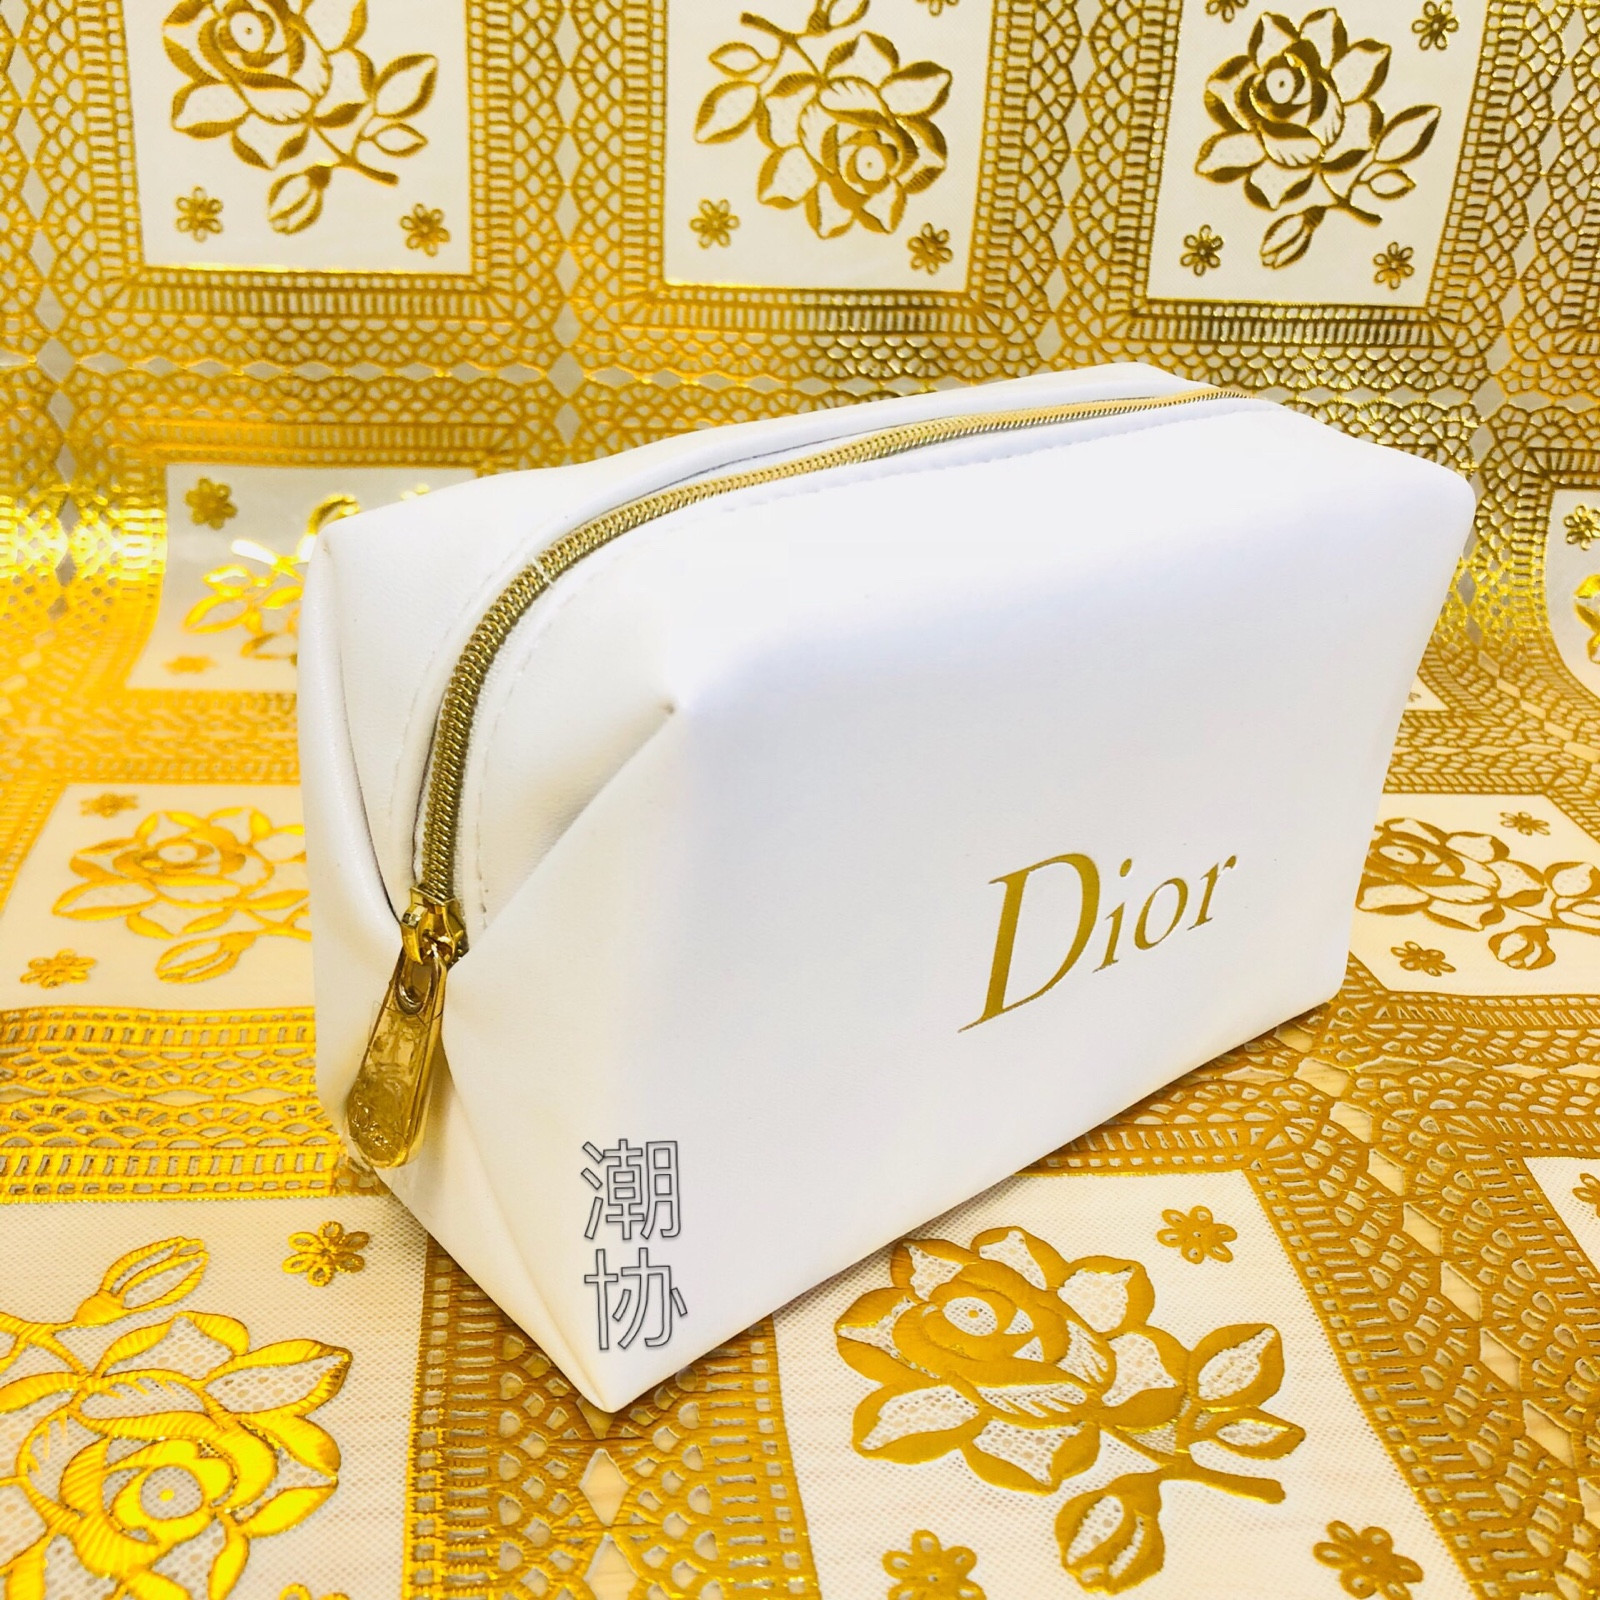 Dior gift White Gold Logo Cosmetic Bag / Wash Bag / Wash Bag / hand bag / pocket change waterproof